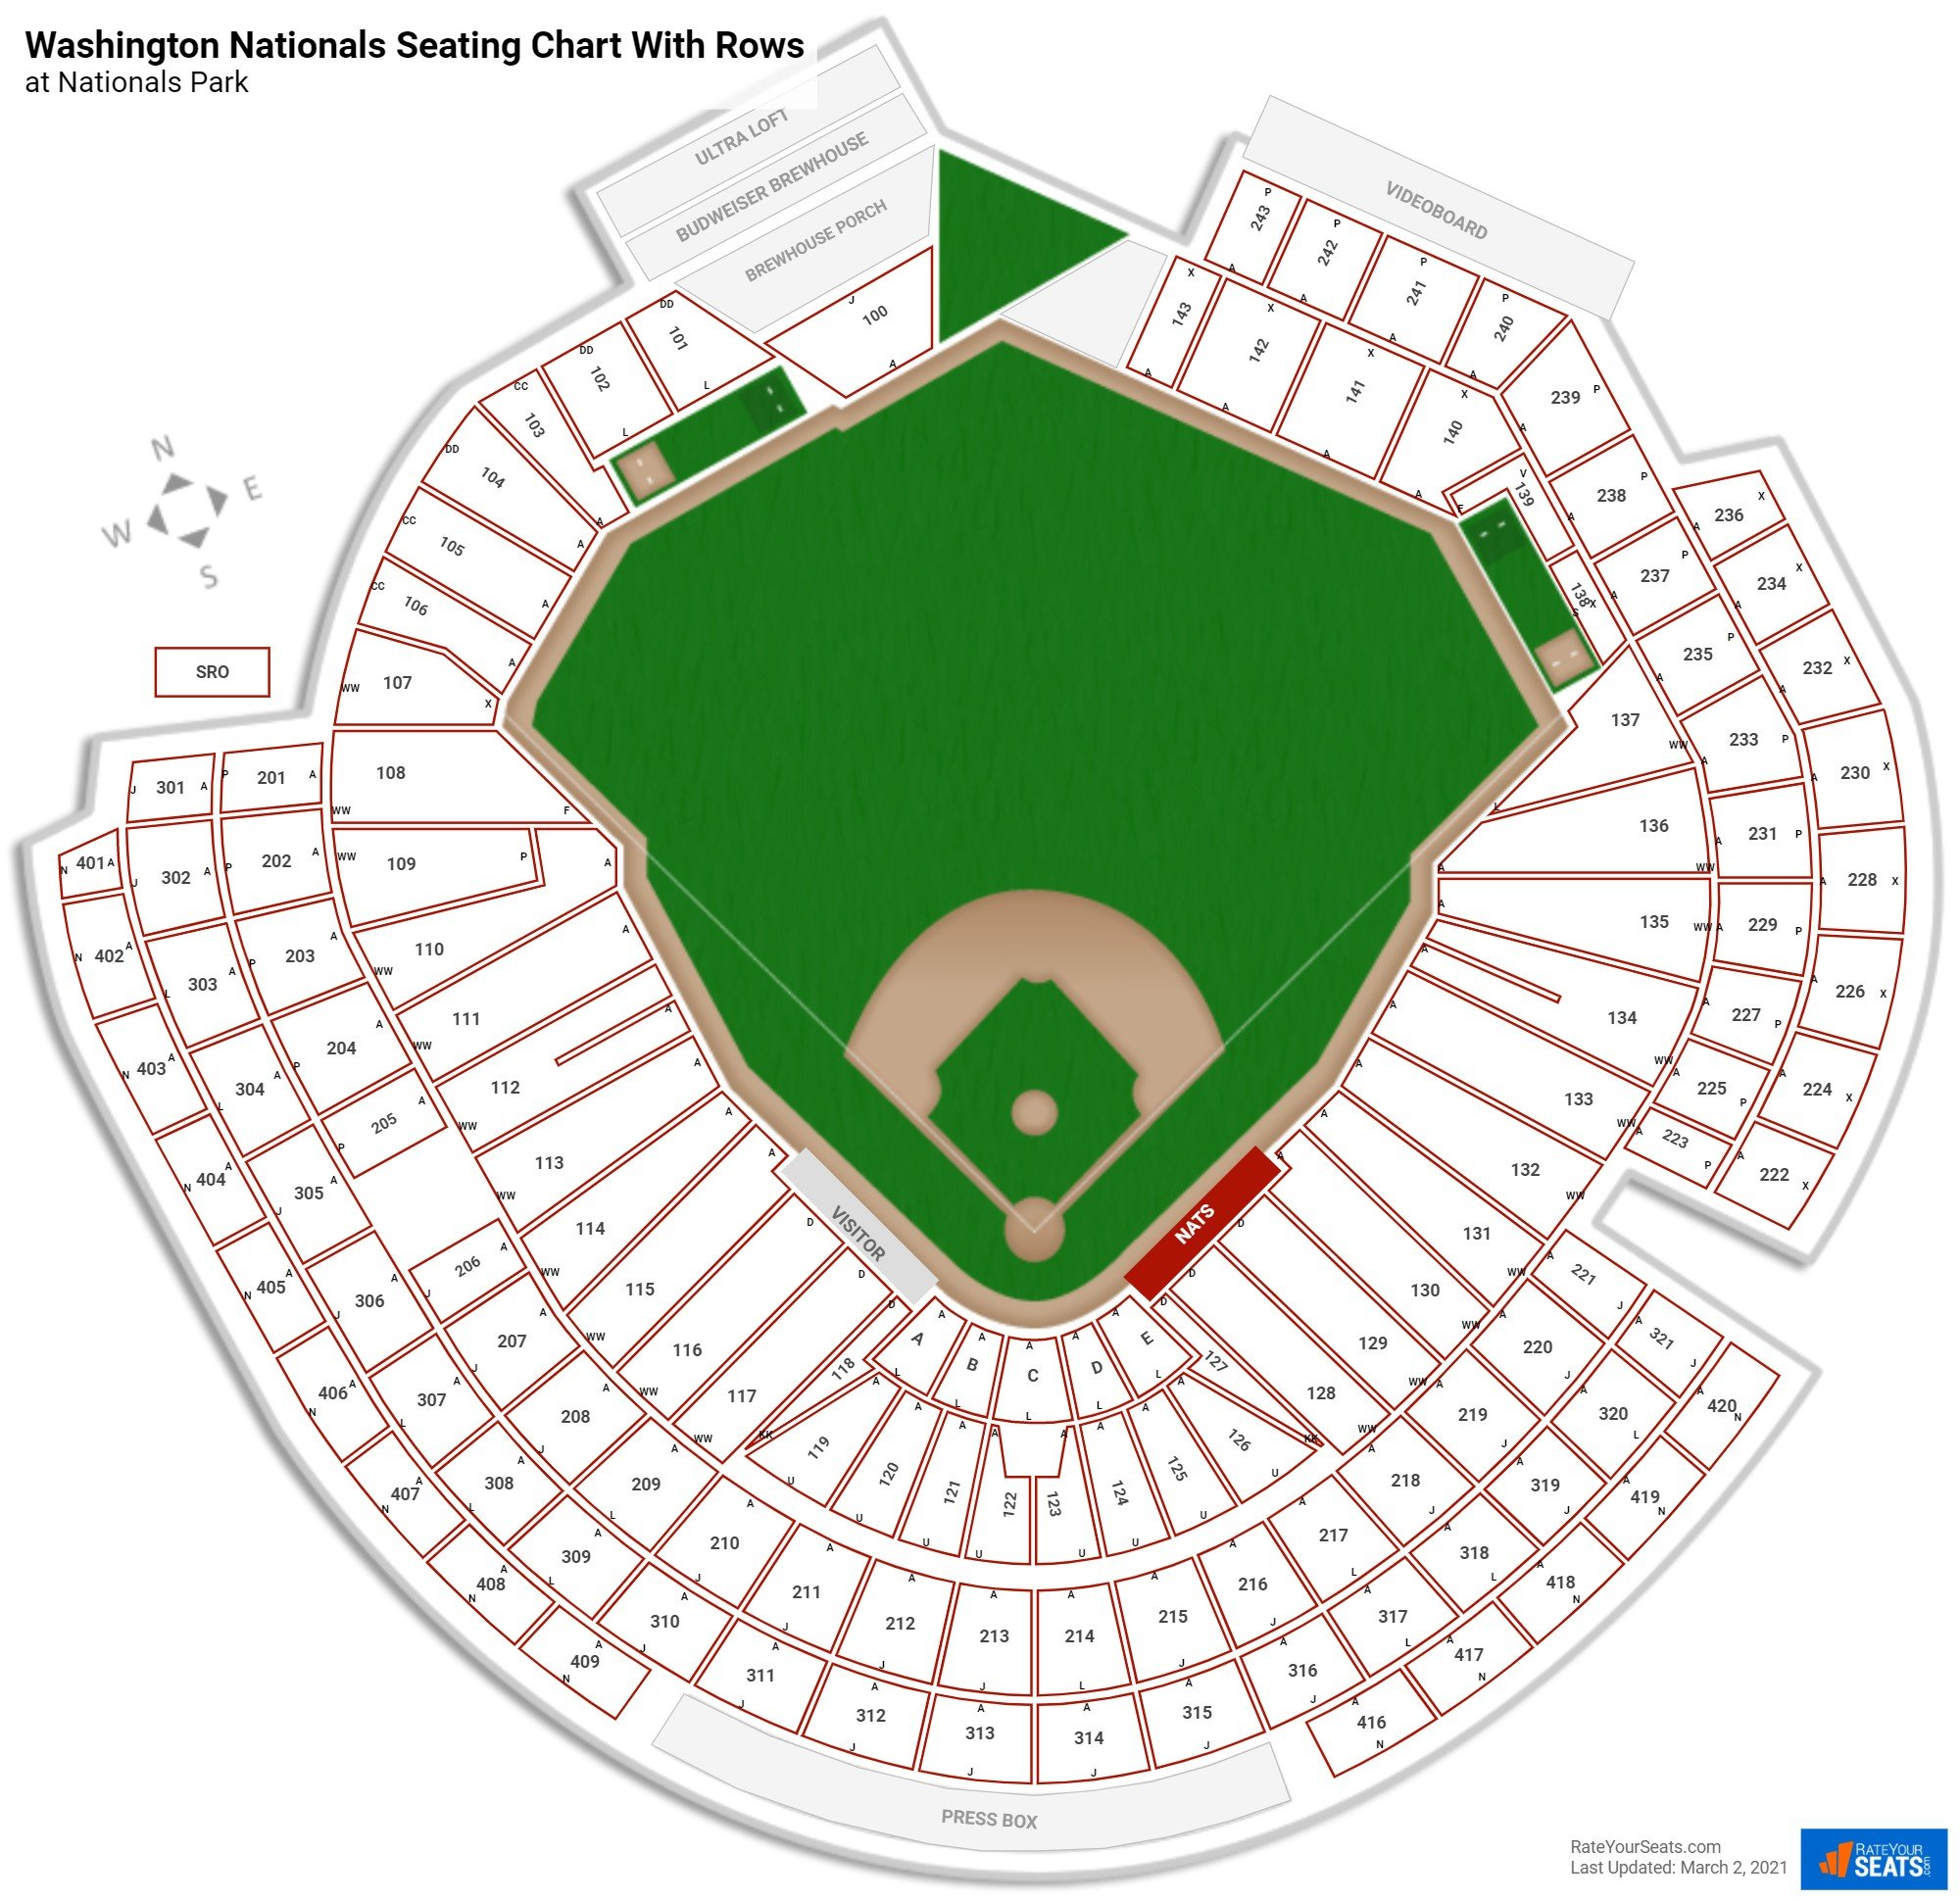 Nationals Park seating chart with rows baseball